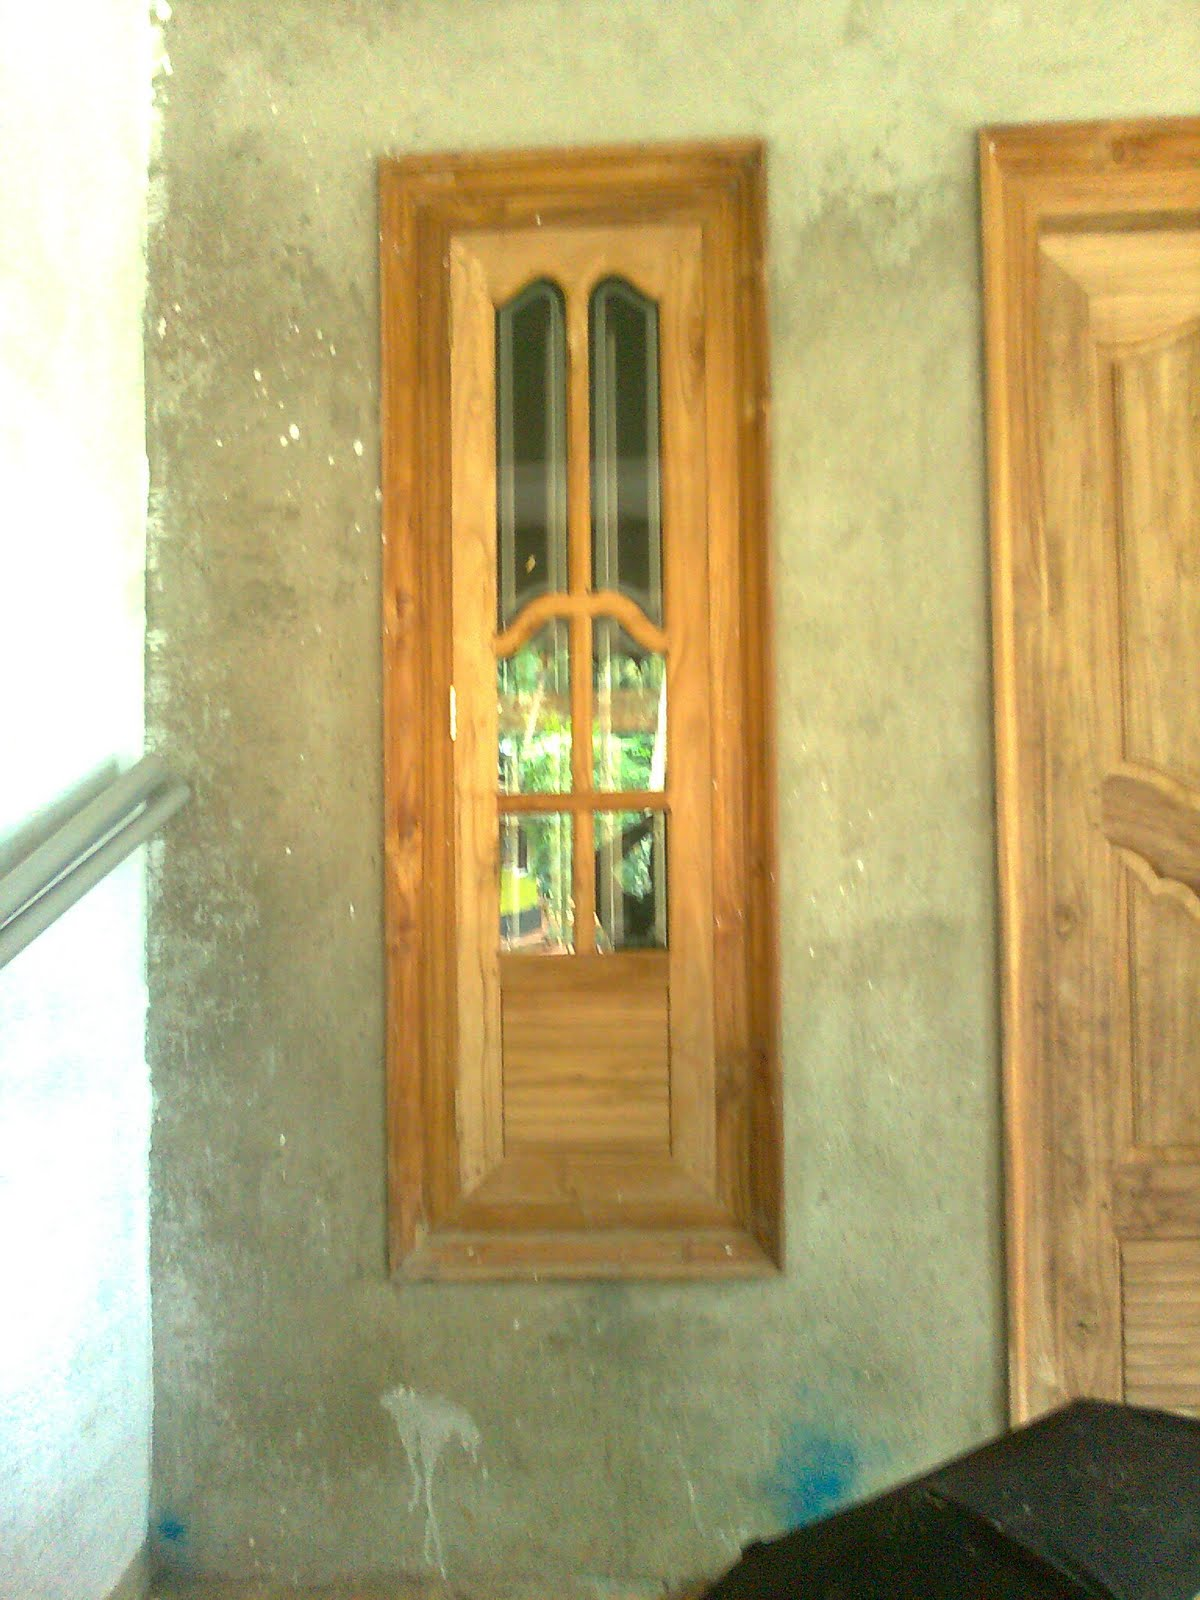 Bavas wood works wooden window doors simple designs for Wooden doors and windows